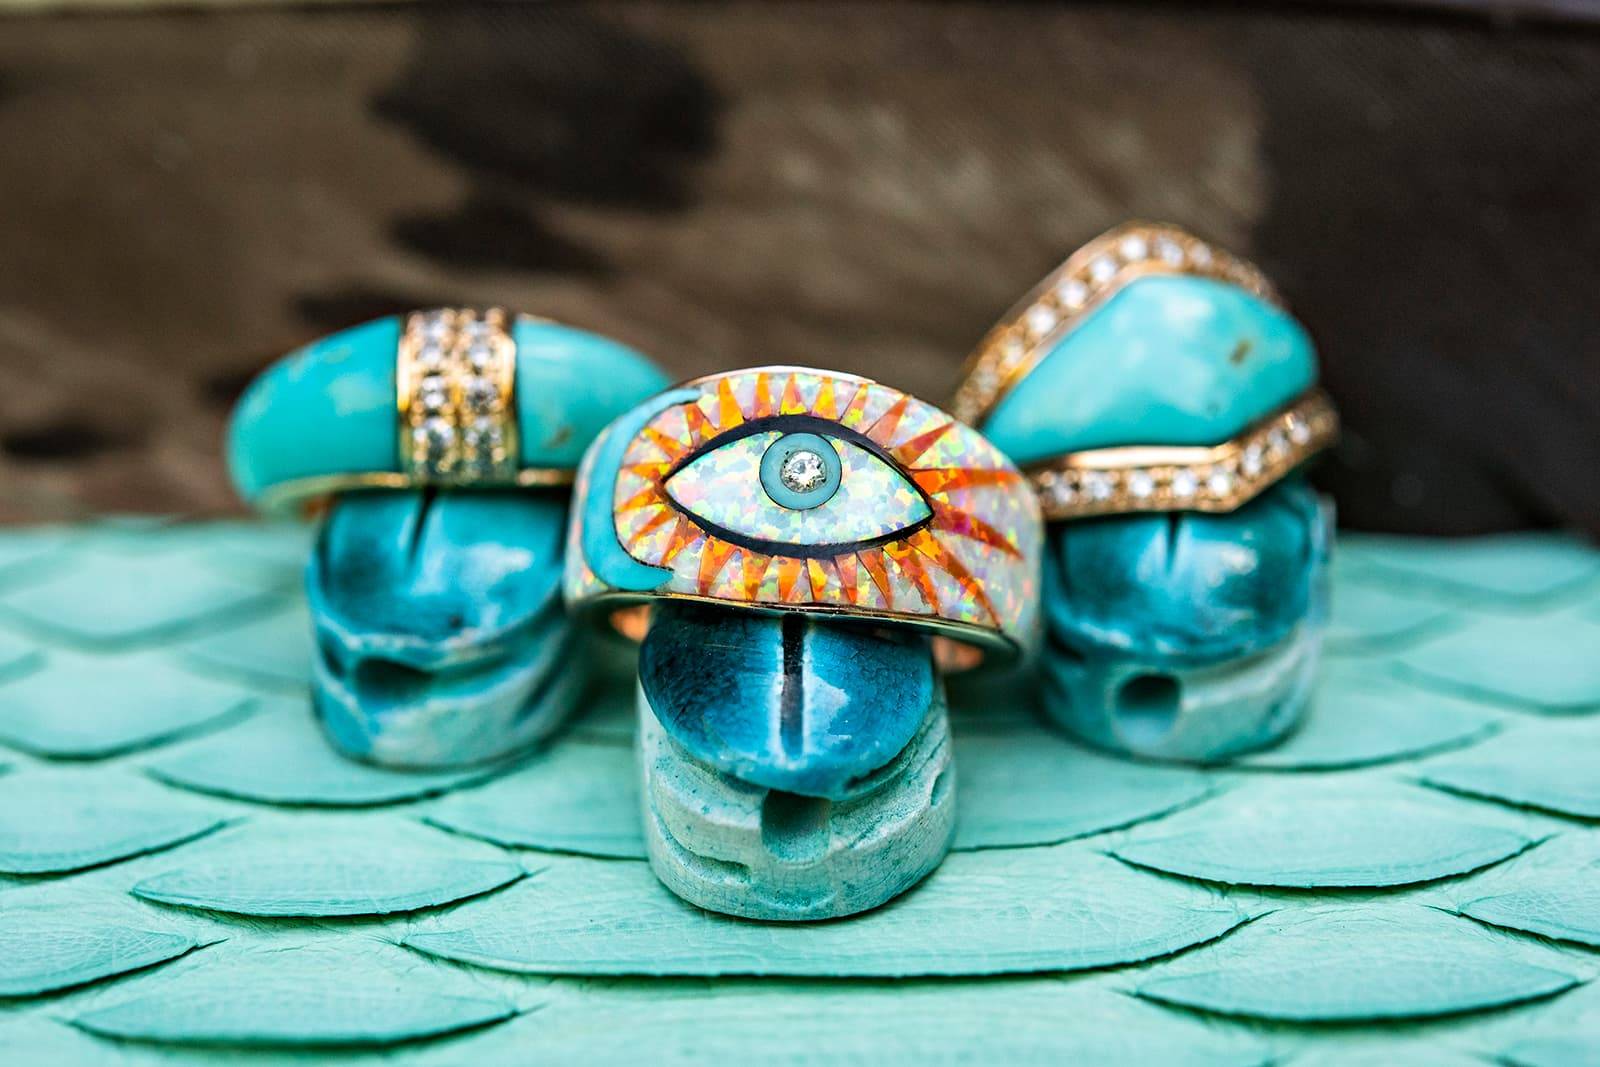 Jacquie Aiche believes that turquoise is a powerful healing stone that centres the spirit and allows positive energy to flow freely